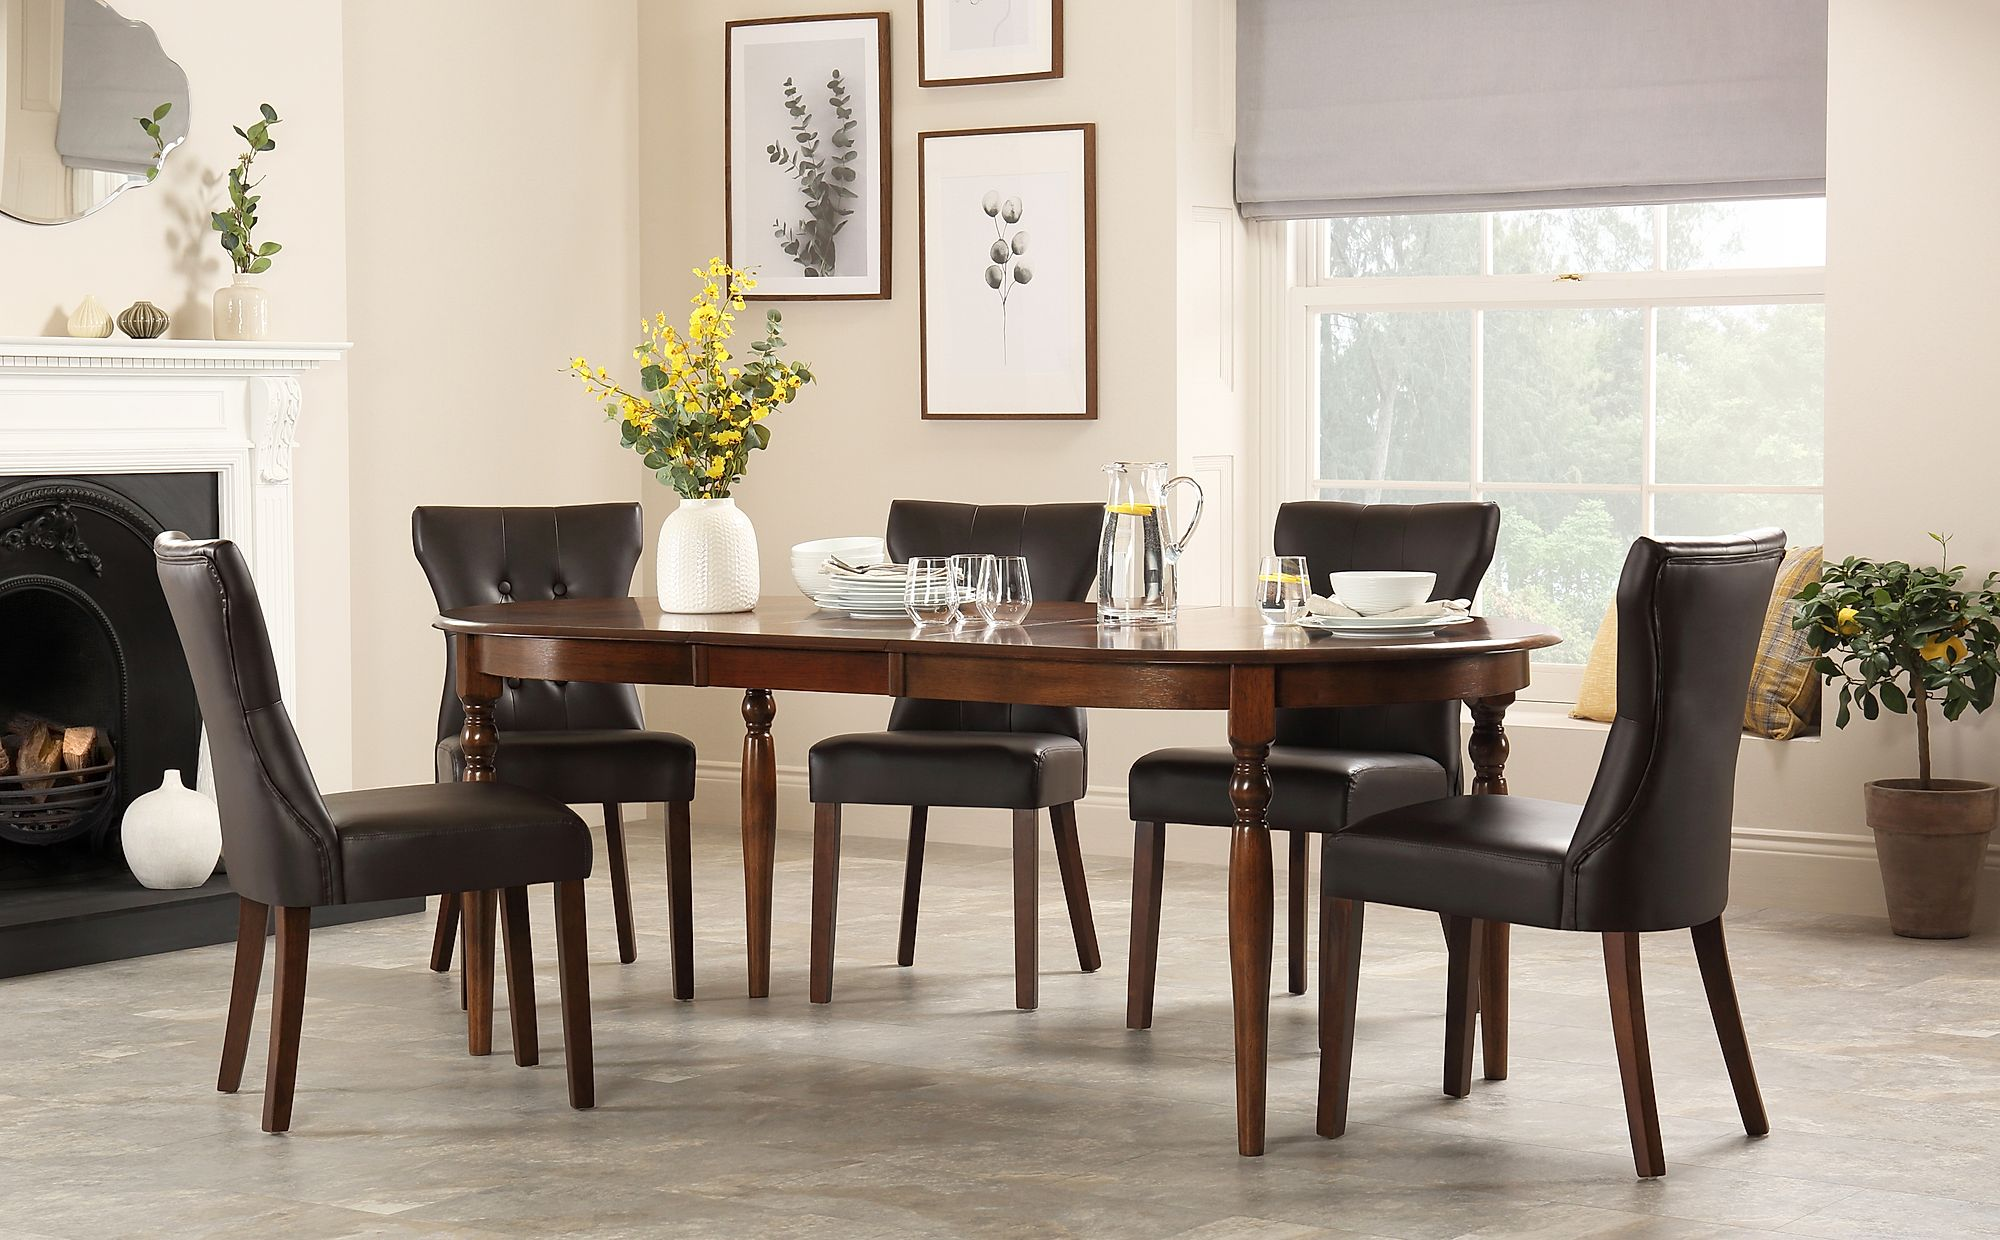 Miraculous Details About Albany Oval Dark Wood Extending Dining Table 4 6 8 Bewley Brown Leather Chairs Onthecornerstone Fun Painted Chair Ideas Images Onthecornerstoneorg